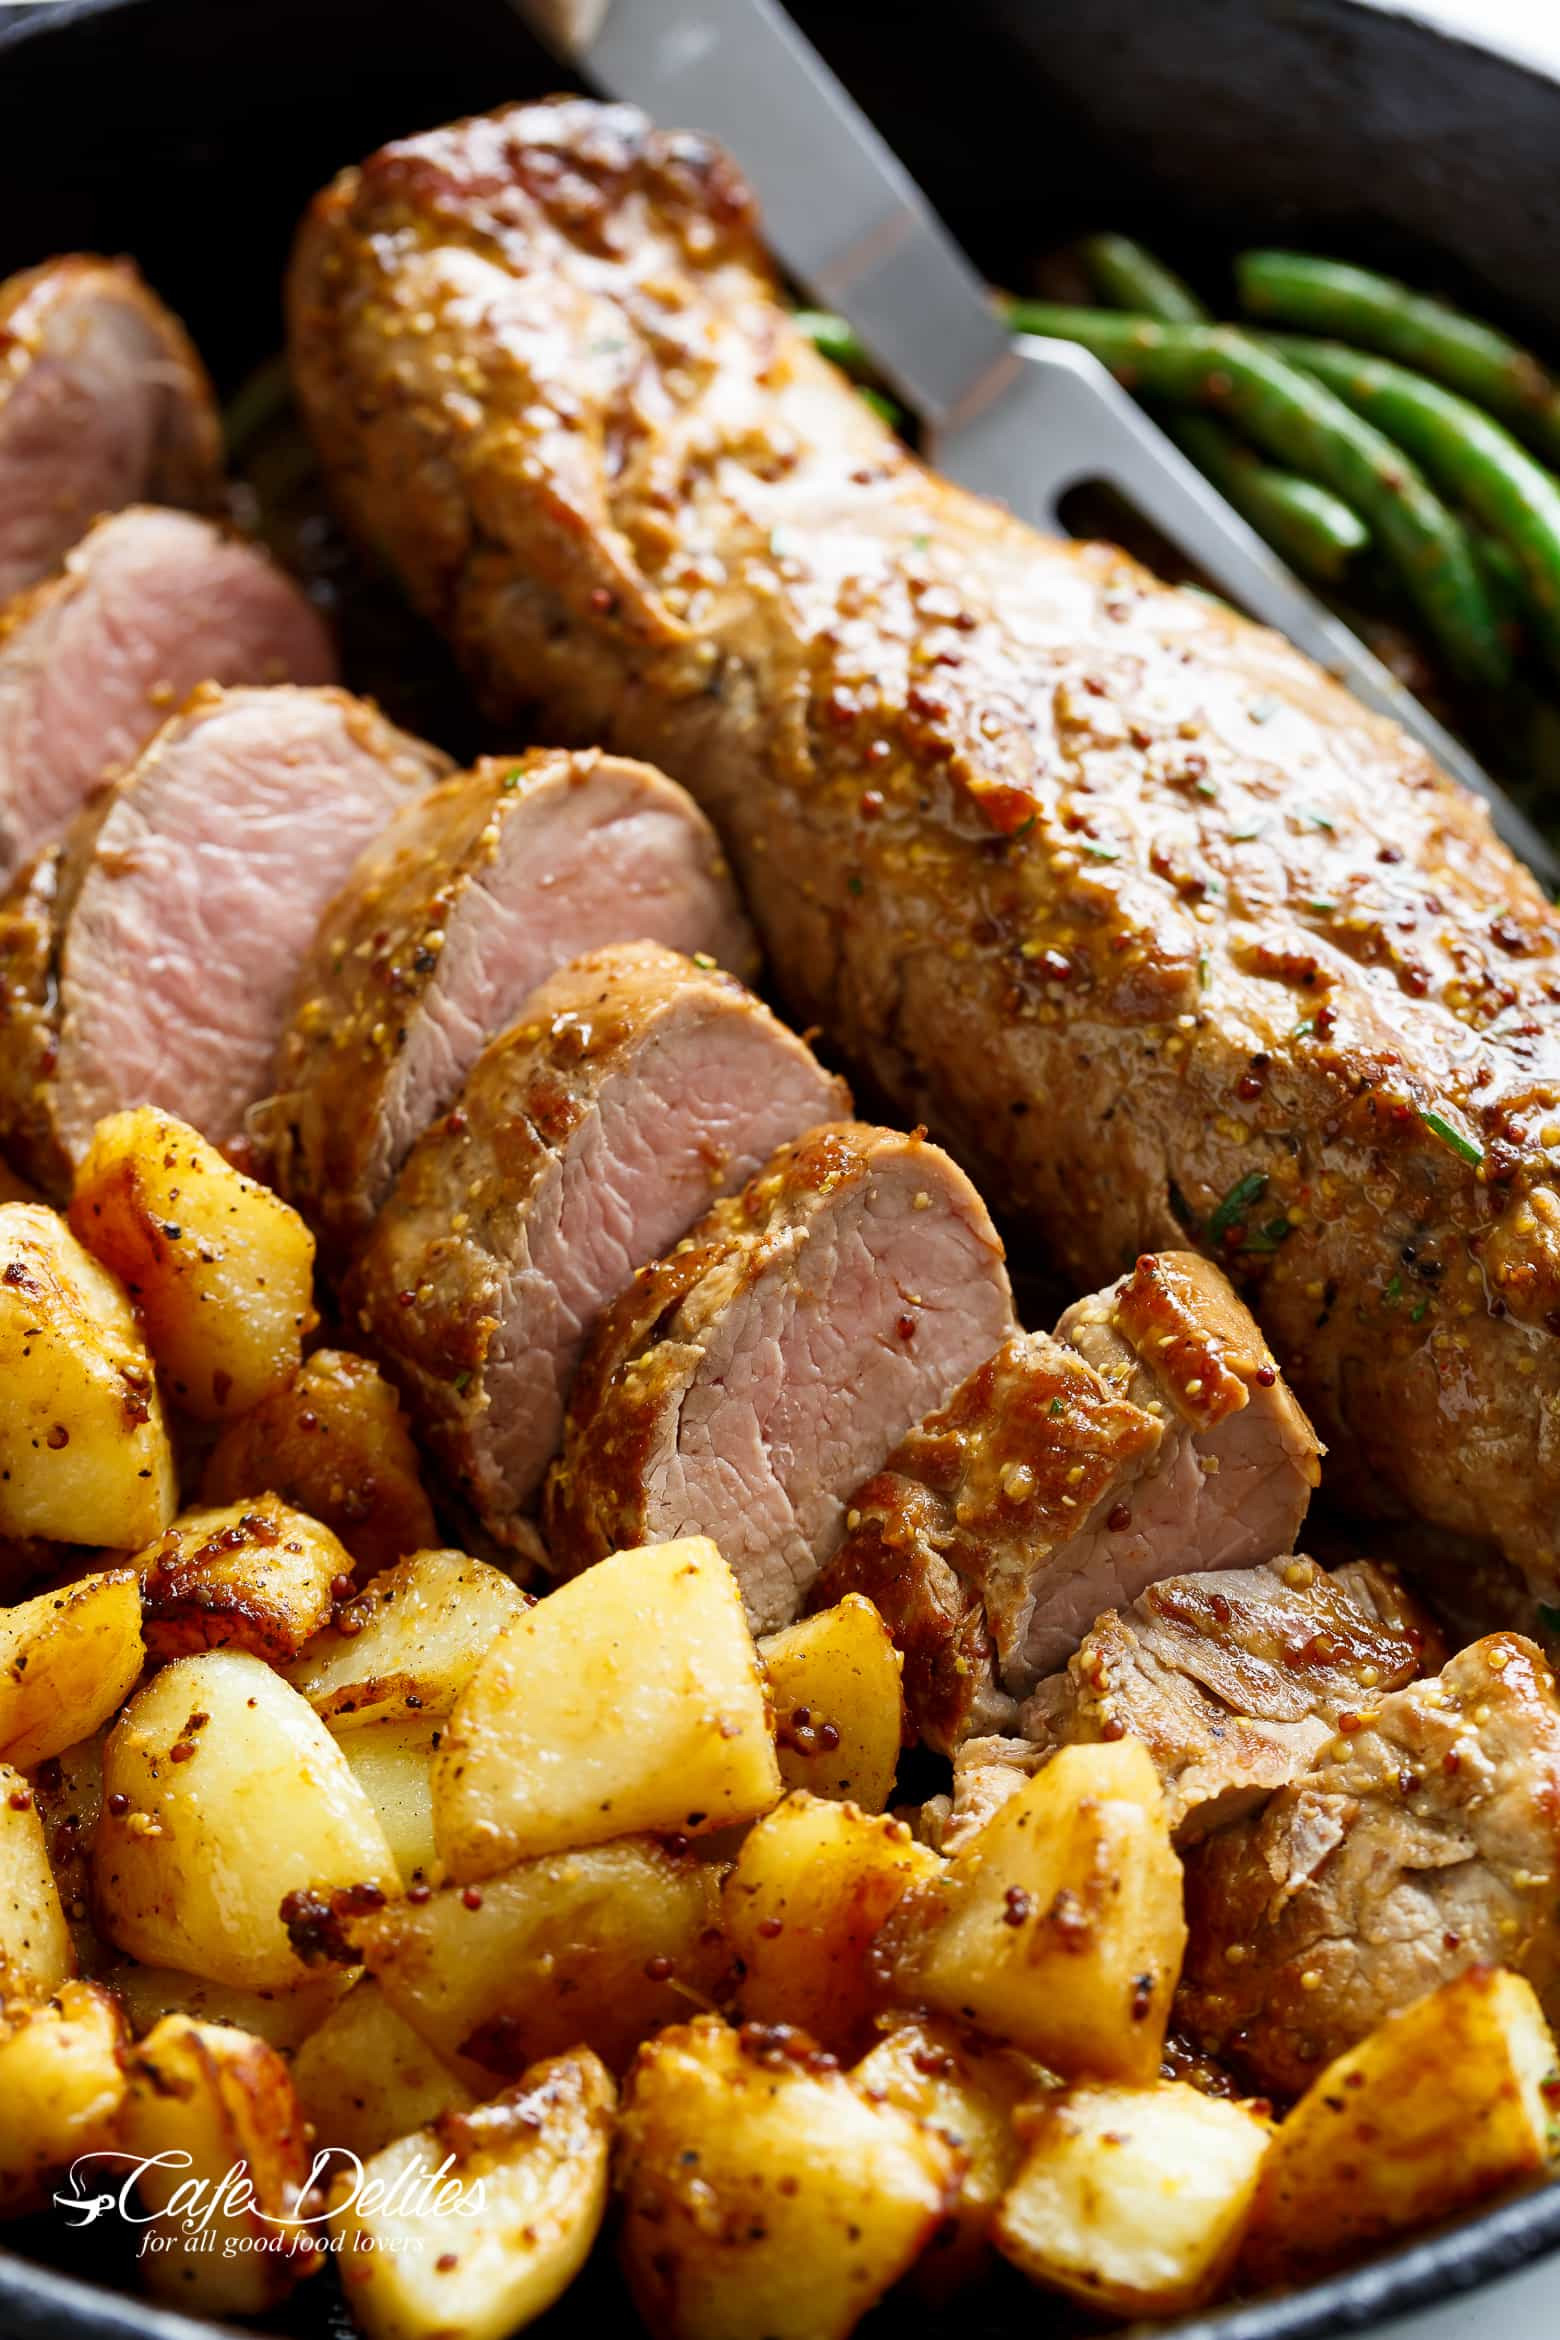 How To Cook A Pork Tenderloin In The Oven  how to cook pork tenderloin in oven without searing